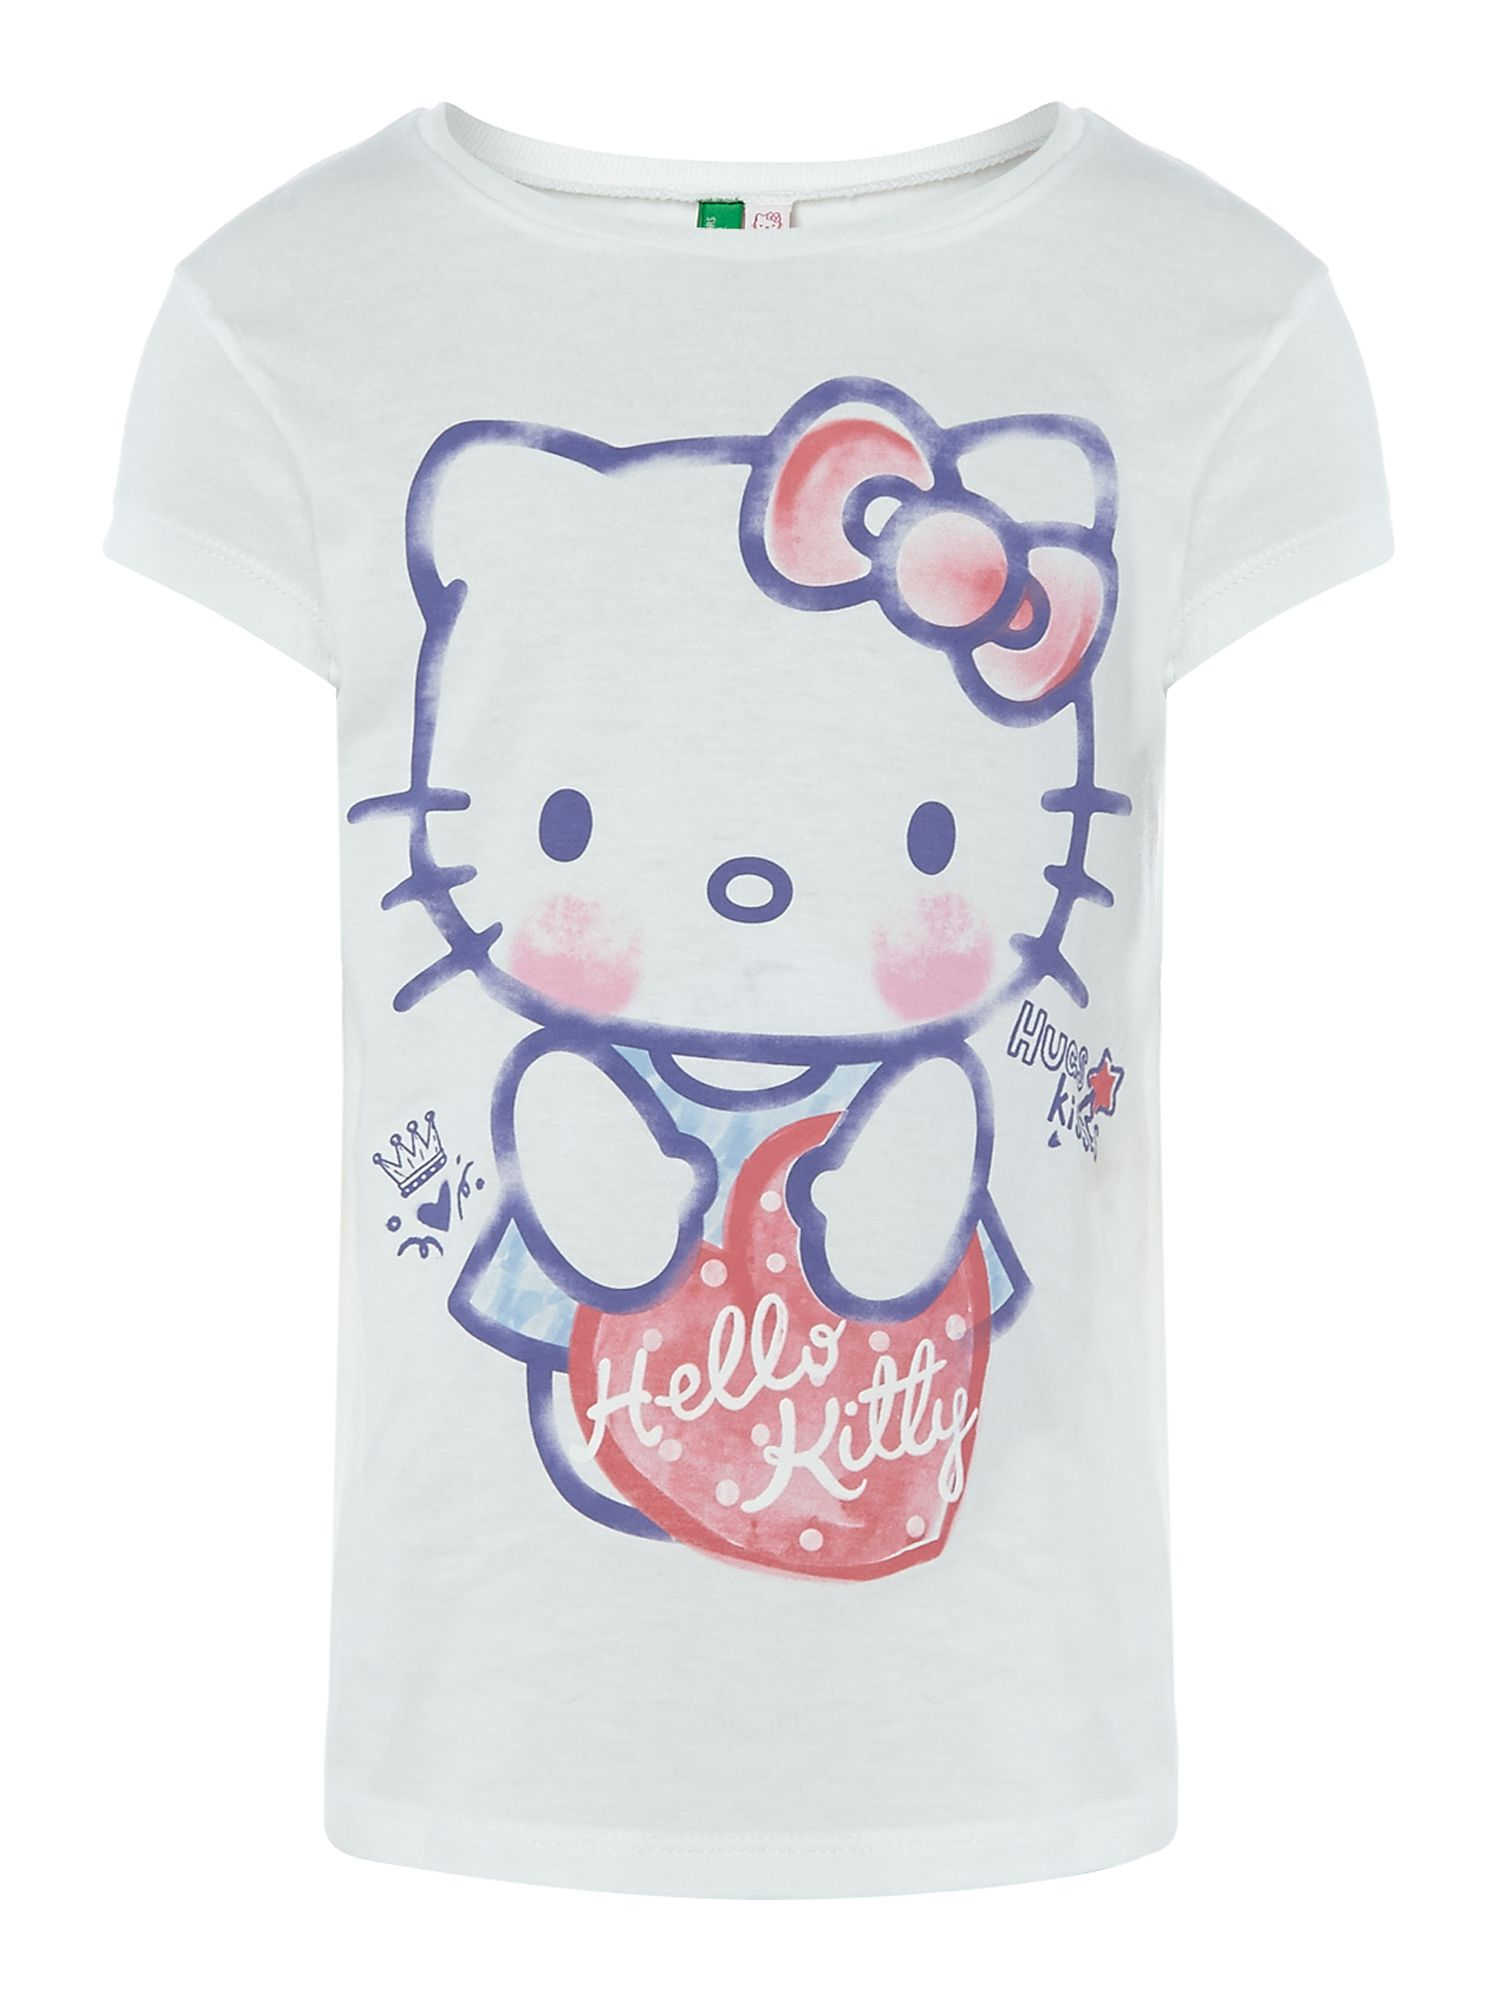 Girls hello kitty t-shirt